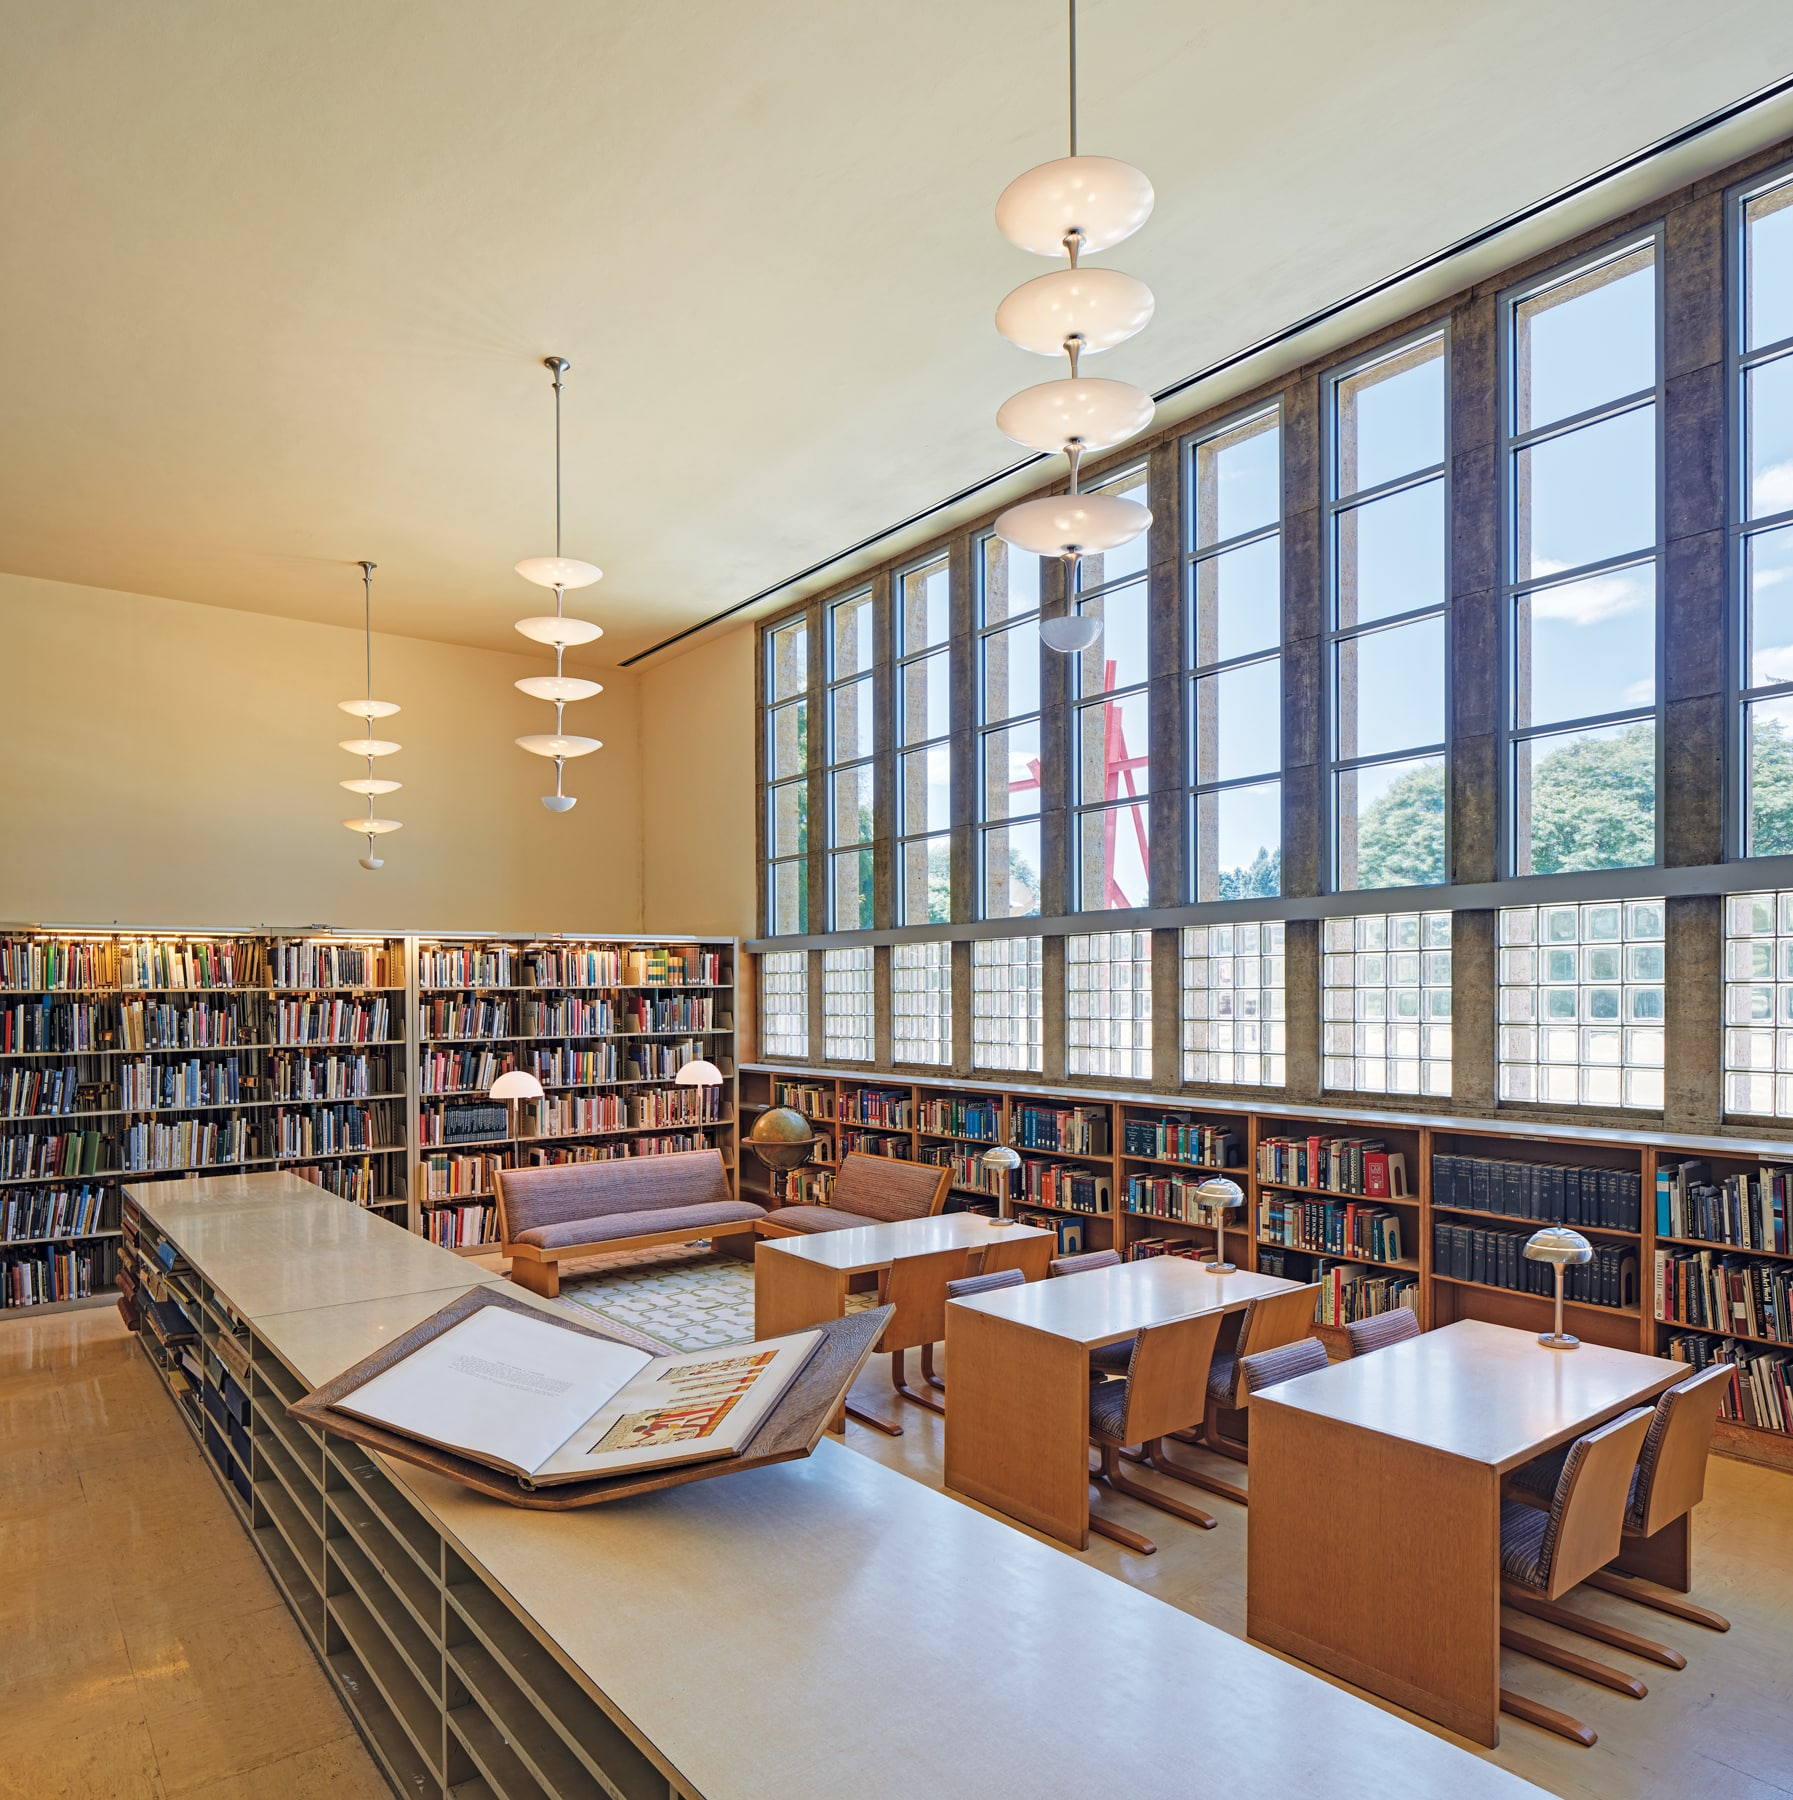 interior of Cranbrook Academy of Art Library, featuring tiered light fixtures and shelves of books